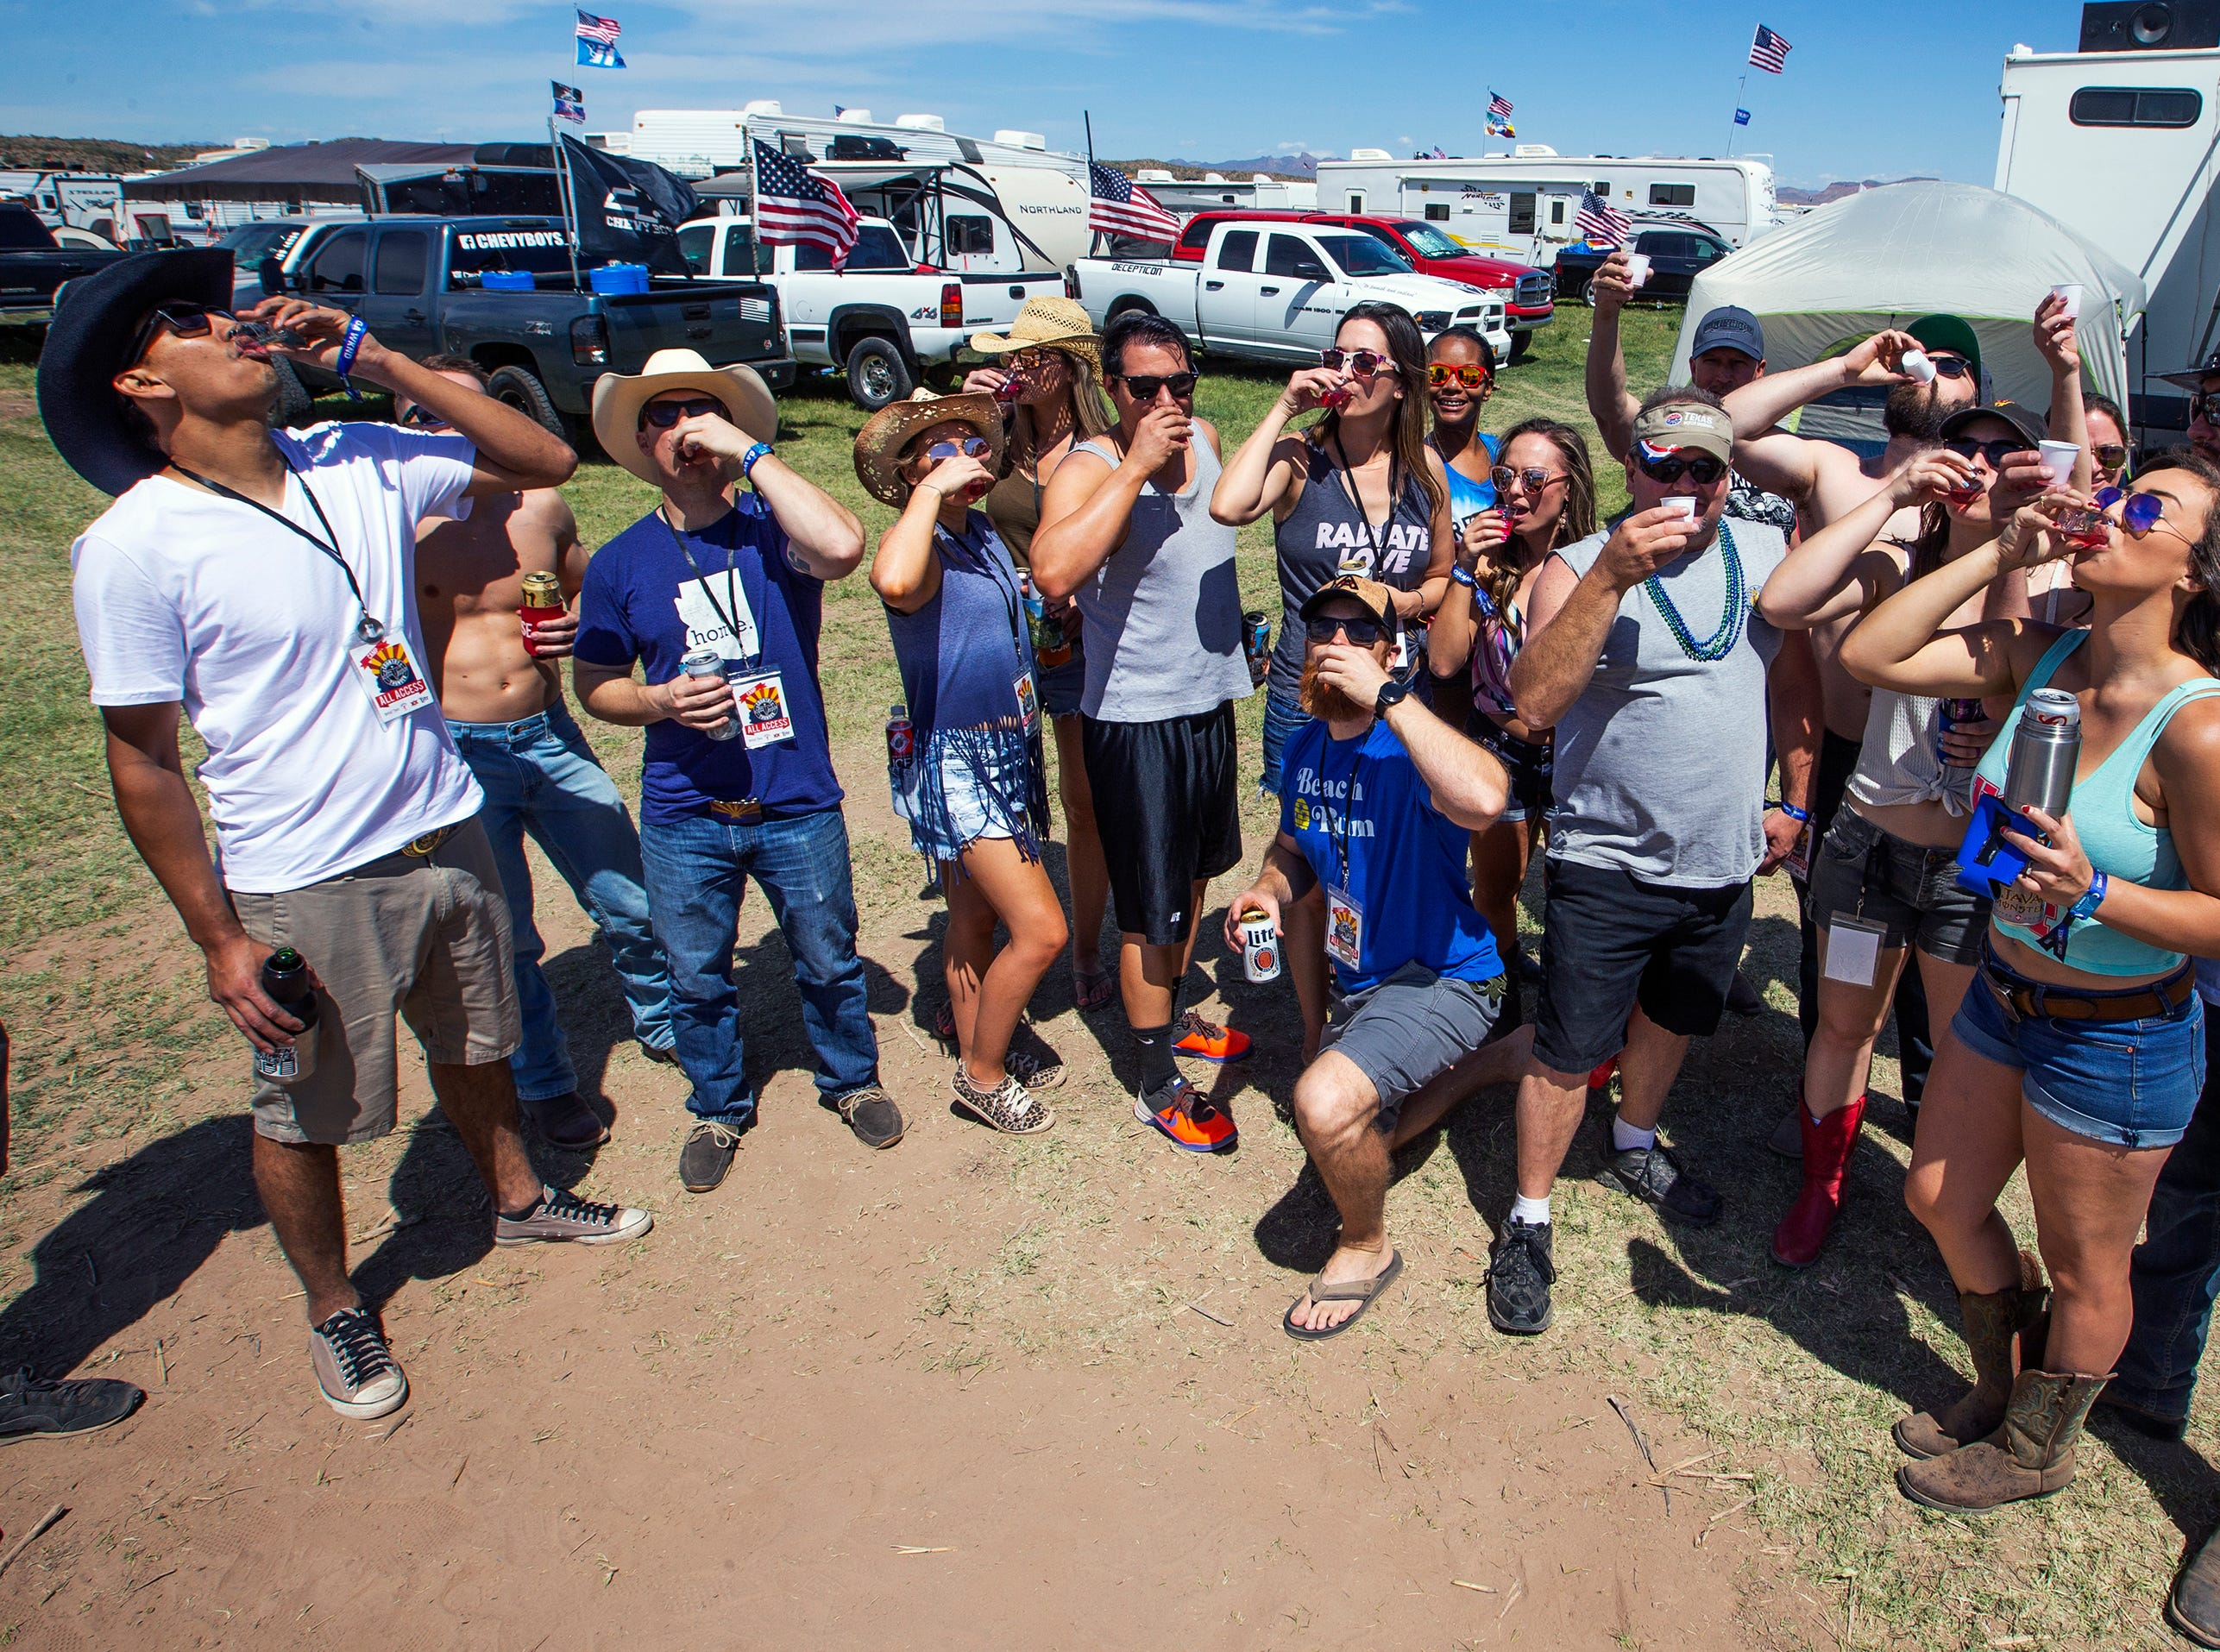 Nothing like shots in camp at the Country Thunder Arizona 2019 music festival, Thursday, April 11, 2019.